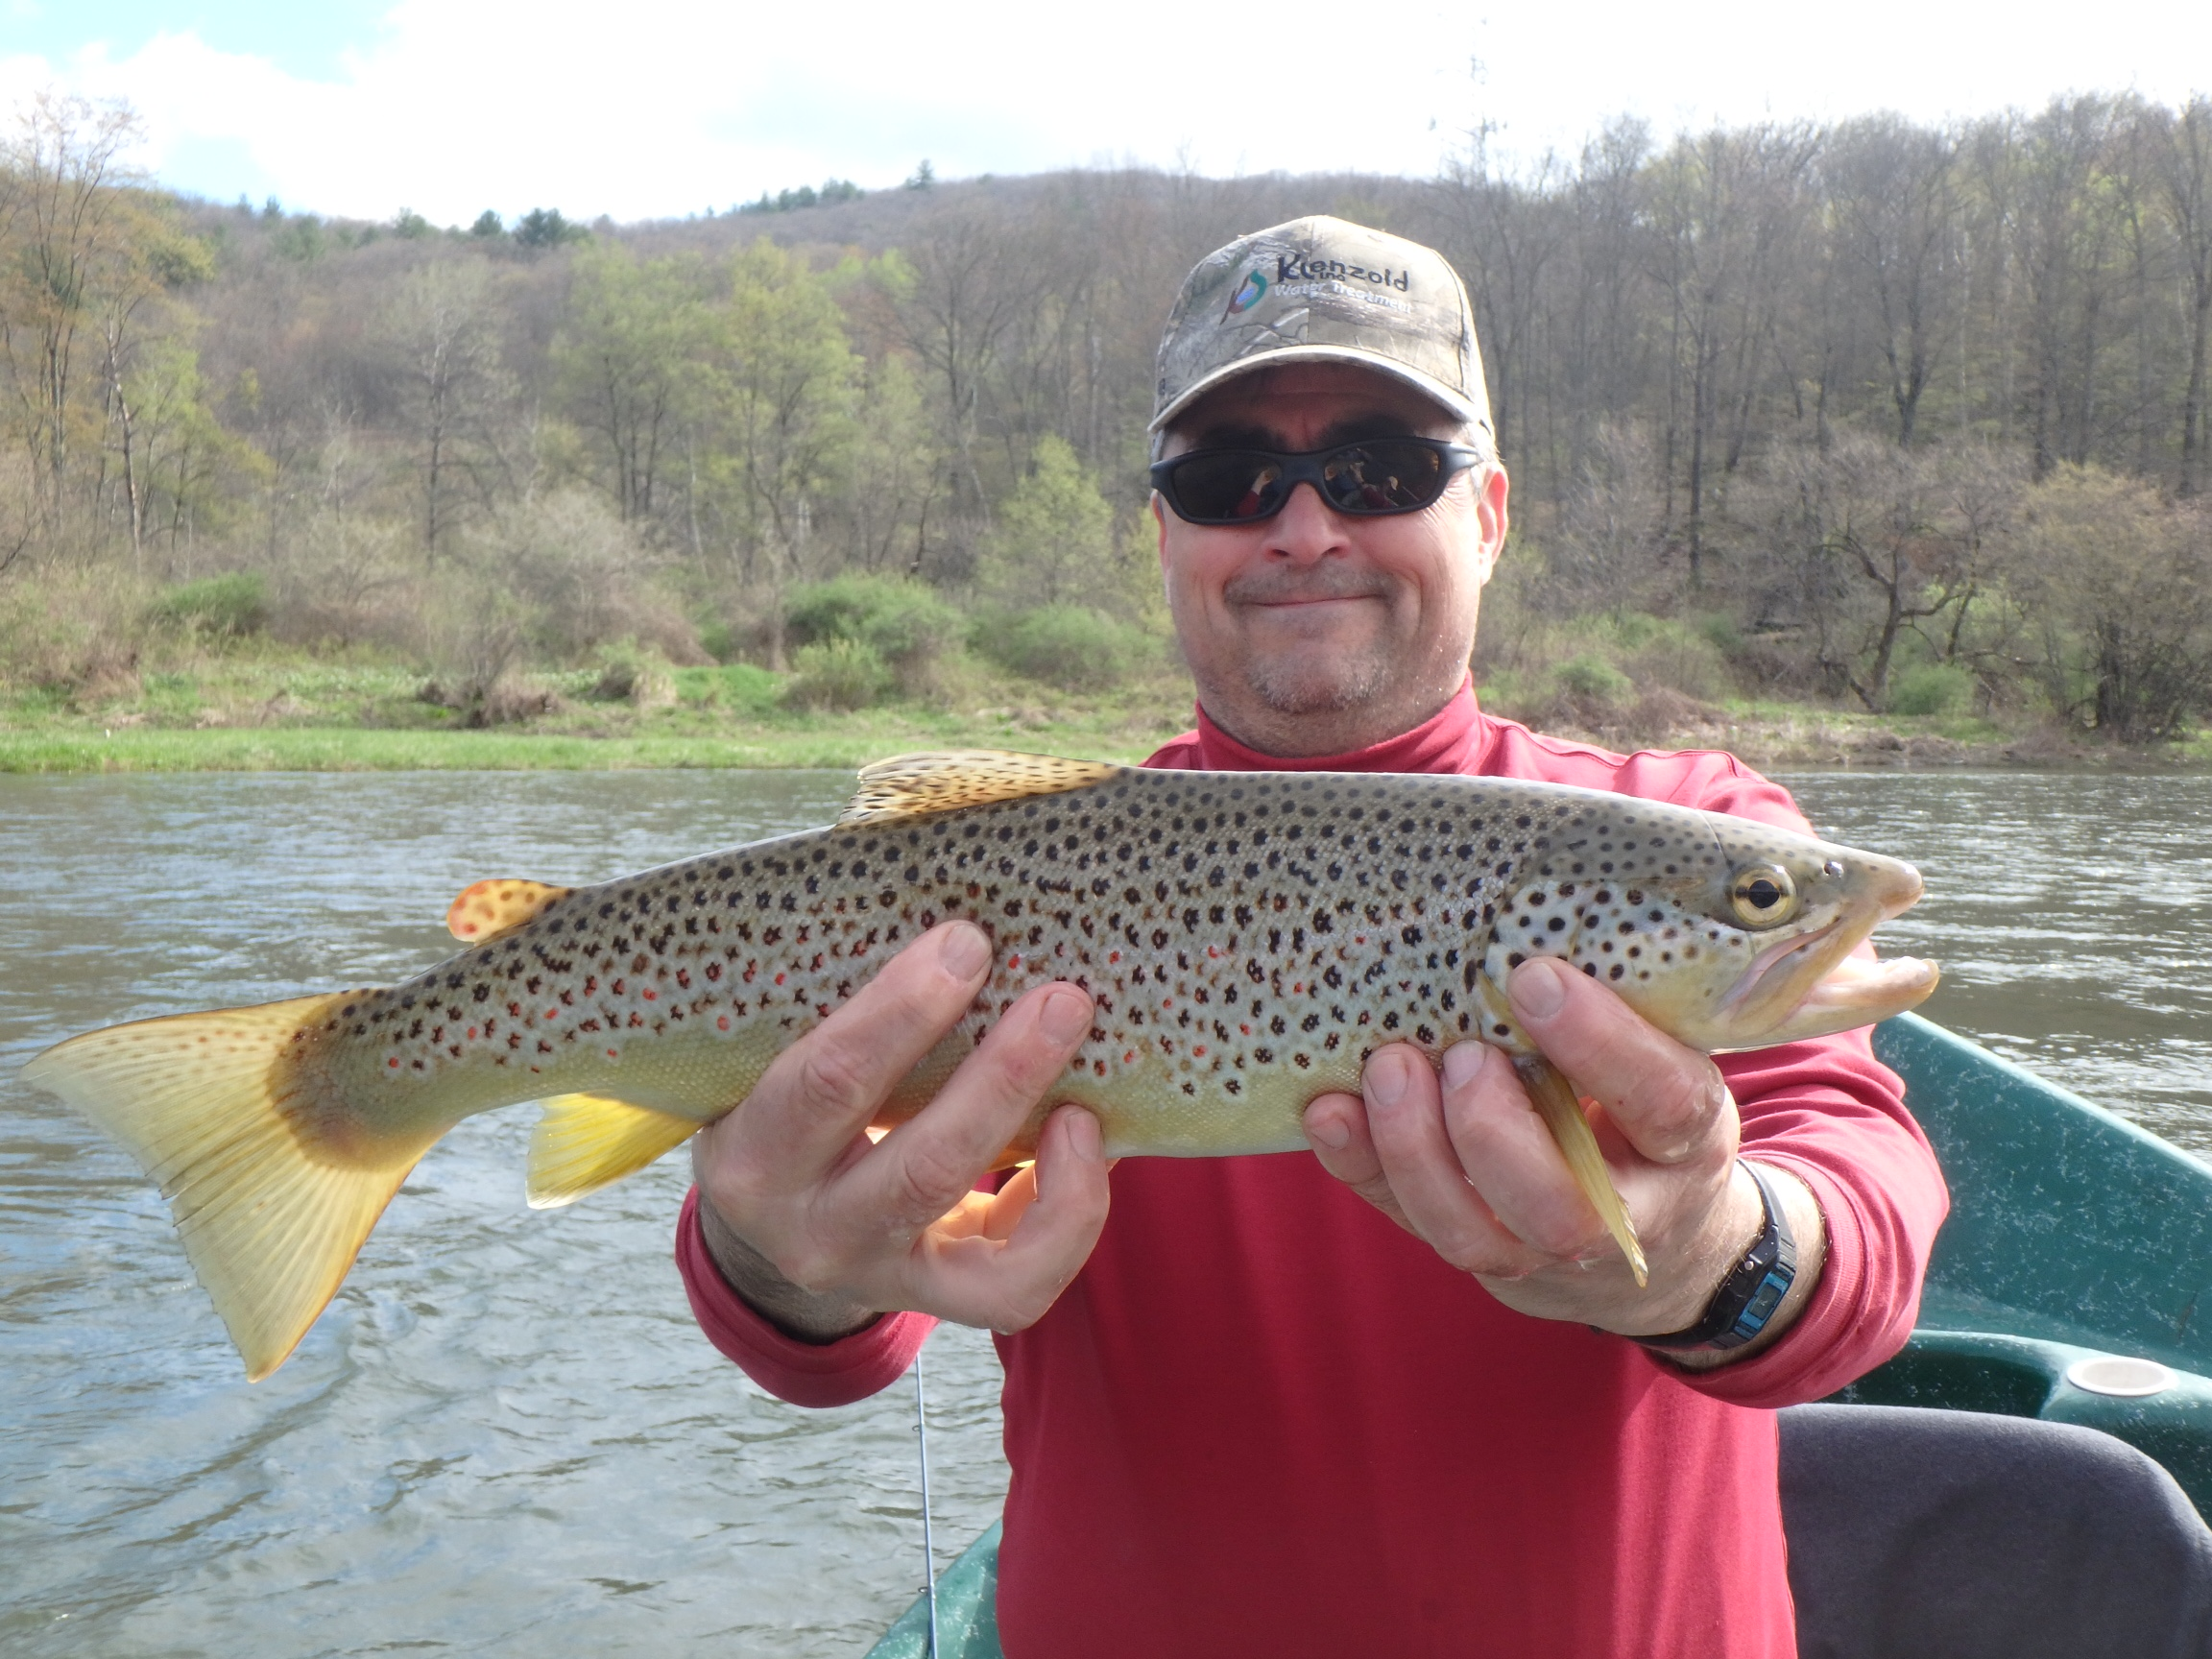 Tony D with a nice Brownie!